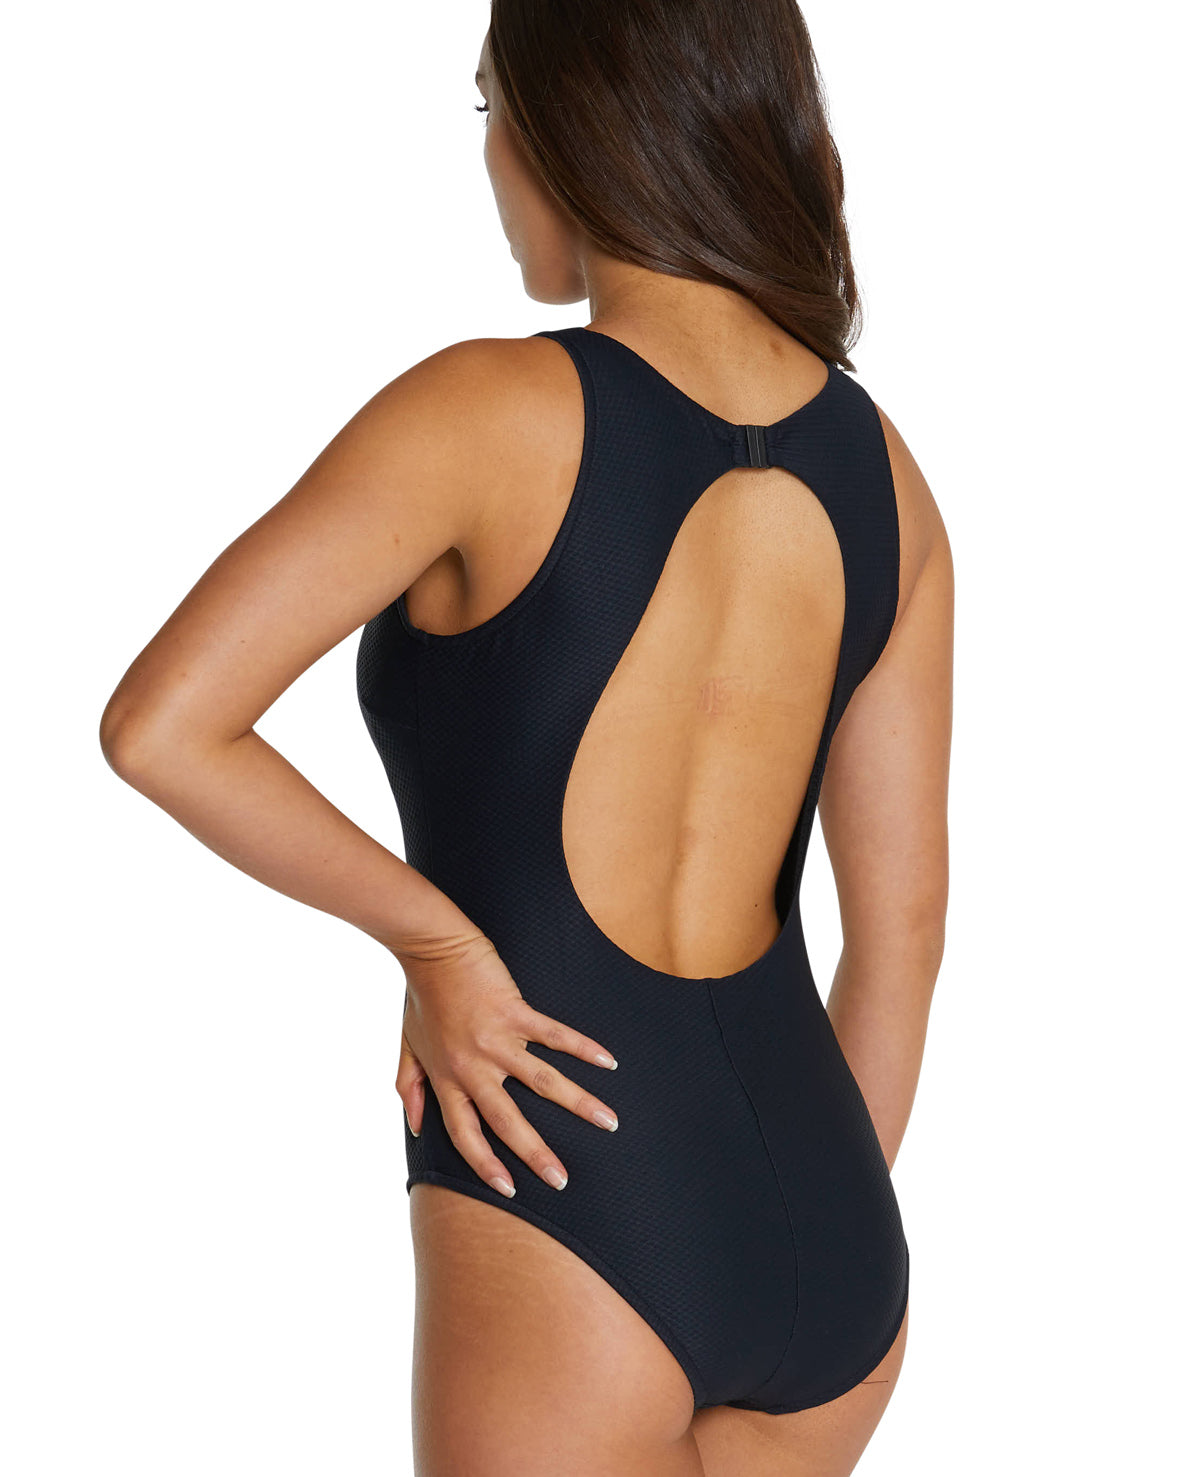 ROCOCCO HIGH NECK KEYHOLE ONE PIECE SWIMSUIT